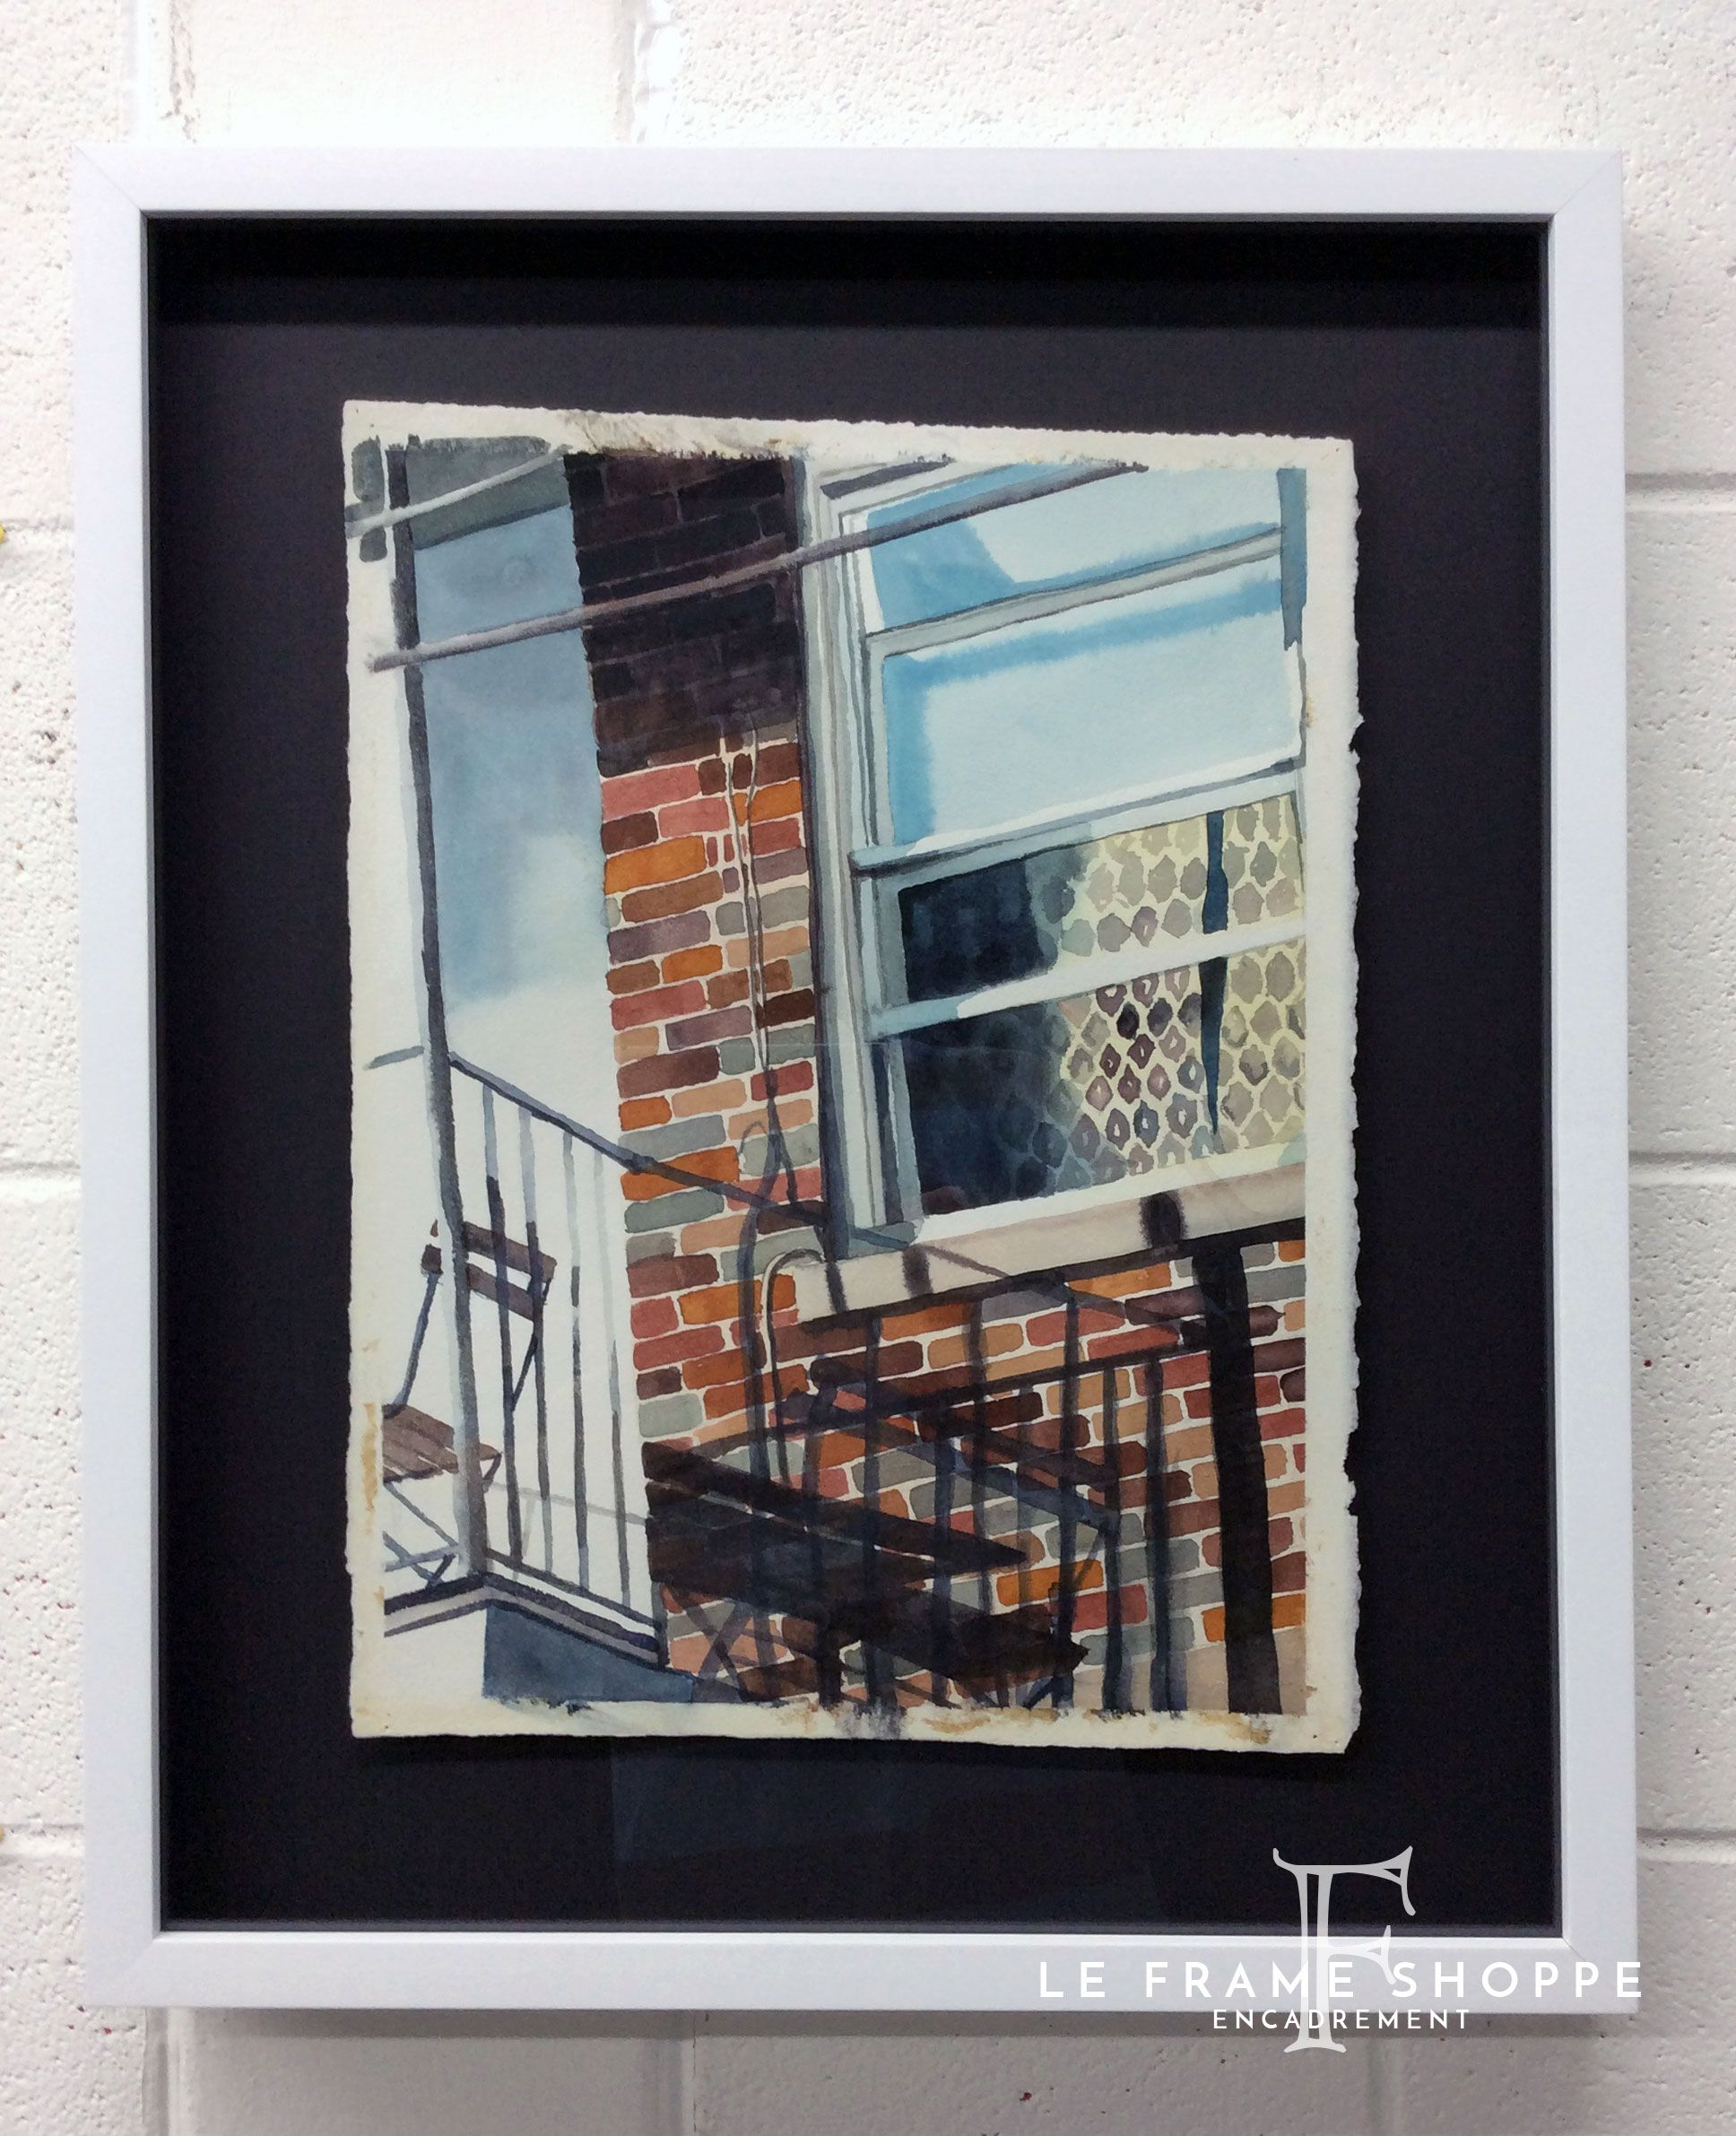 Loving The Contrast For This Beautiful Watercolours Recessed Frame Design,